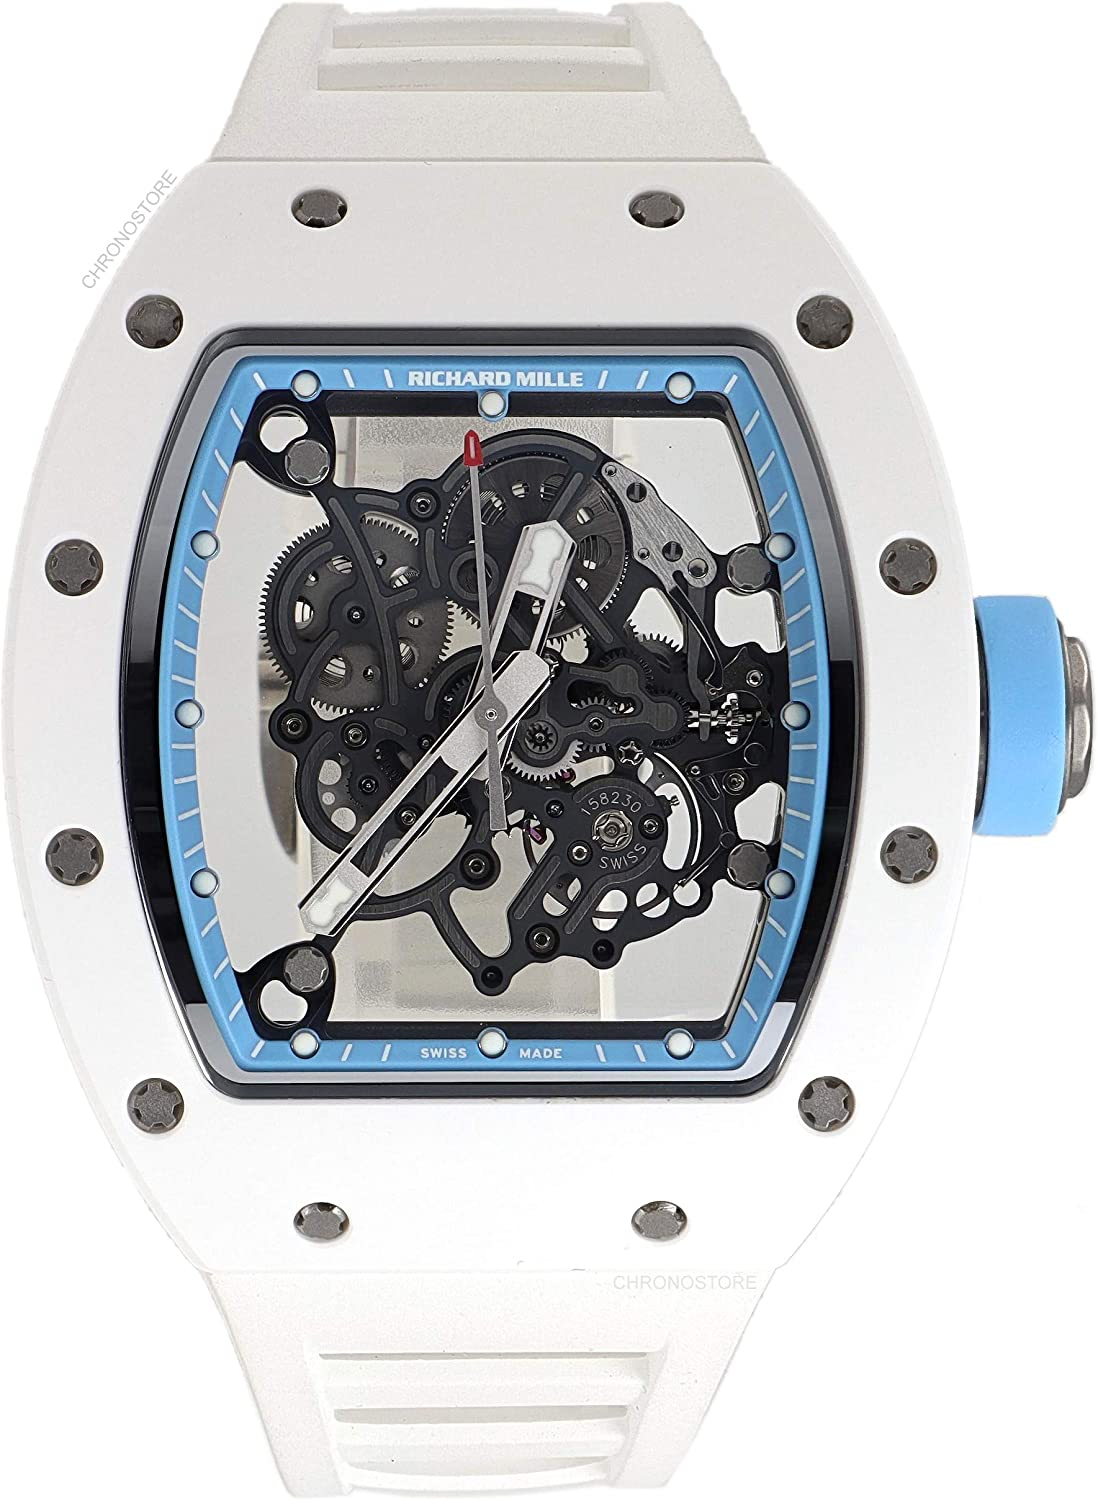 Richard Mille RM 055 Mechanical-Hand-Wind Male Watch RM055 (Certified Pre-Owned)